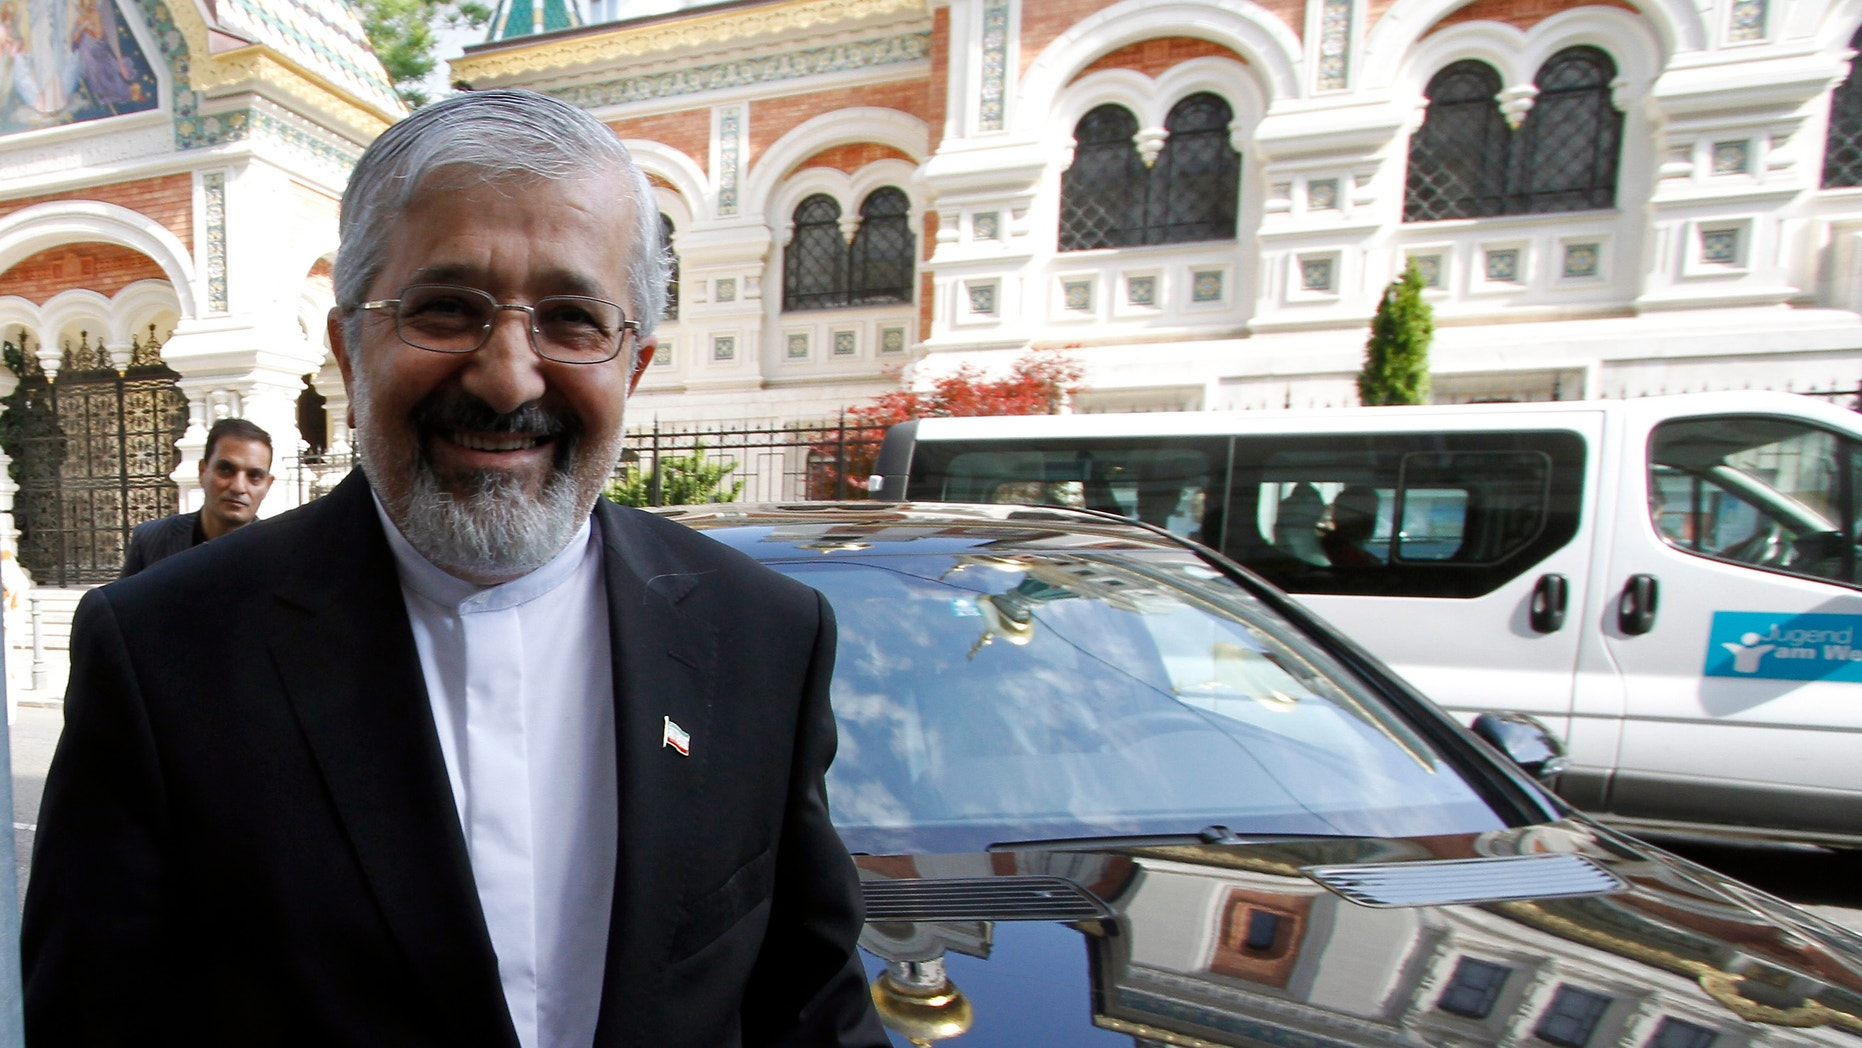 May 15, 2012: Iran's Ambassador to the International Atomic Energy Agency, IAEA, Ali Asghar Soltanieh arrives for talks with the International IAEA at the permanent mission of Iran in Vienna, Austria.